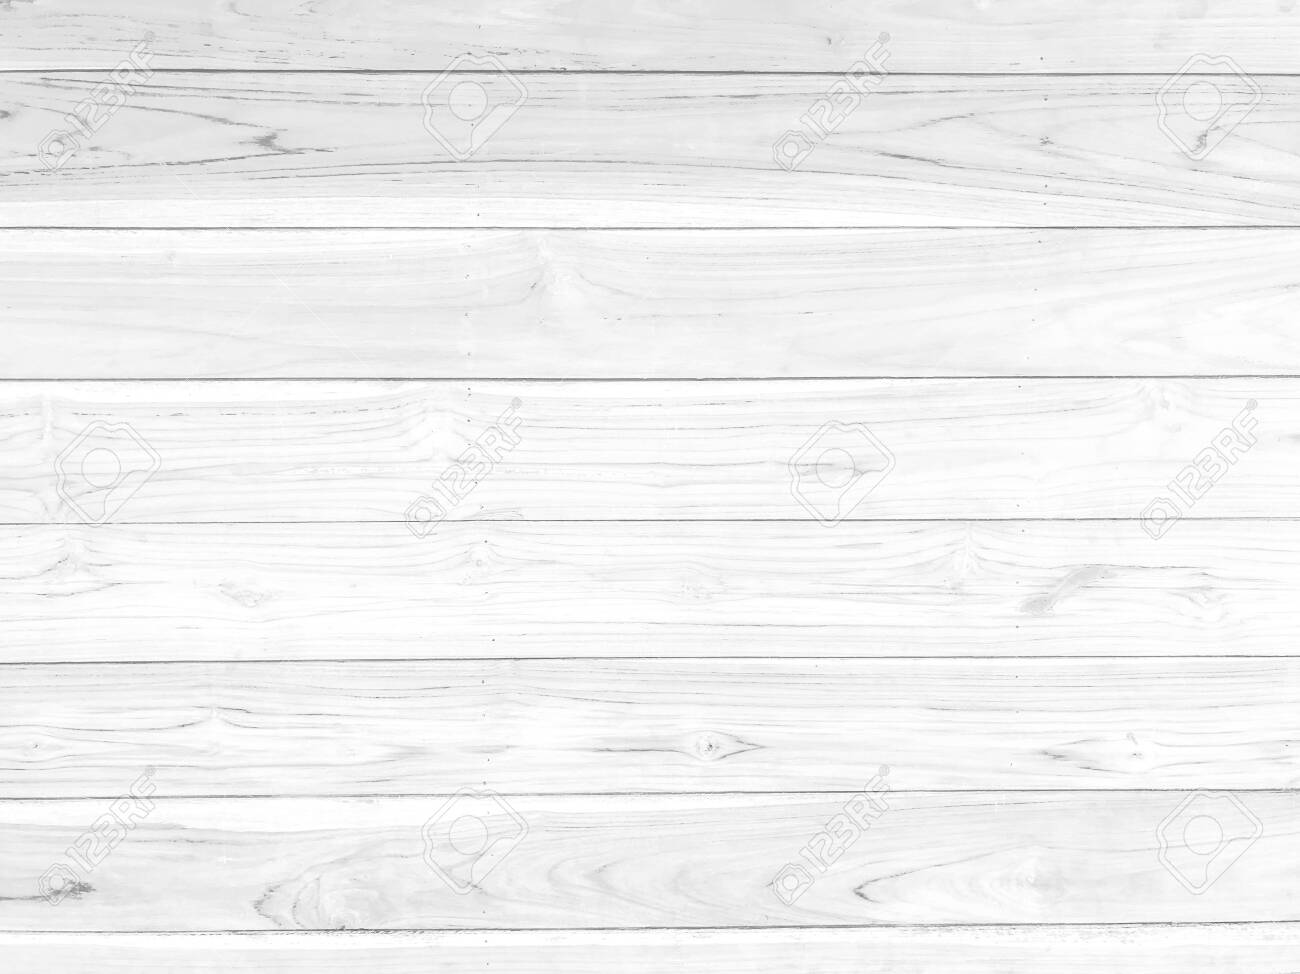 White horizontal wooden pattern textured background for decorative or work texture design. - 121187922